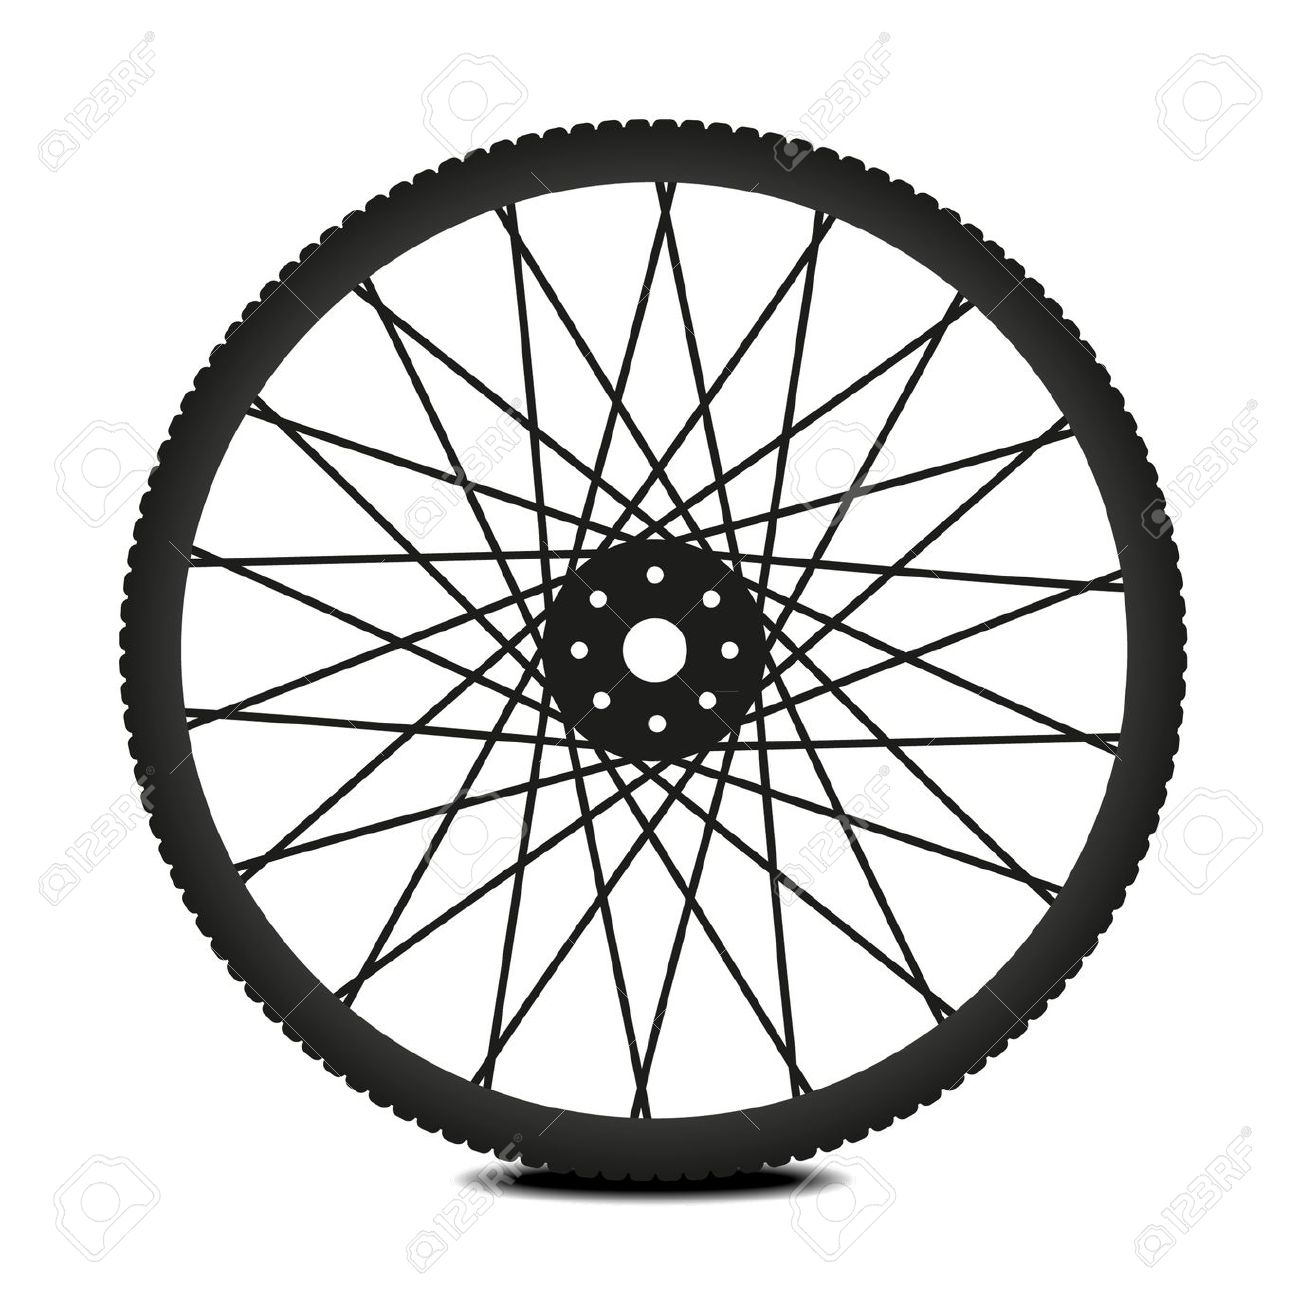 Clipart Bicycle Wheel